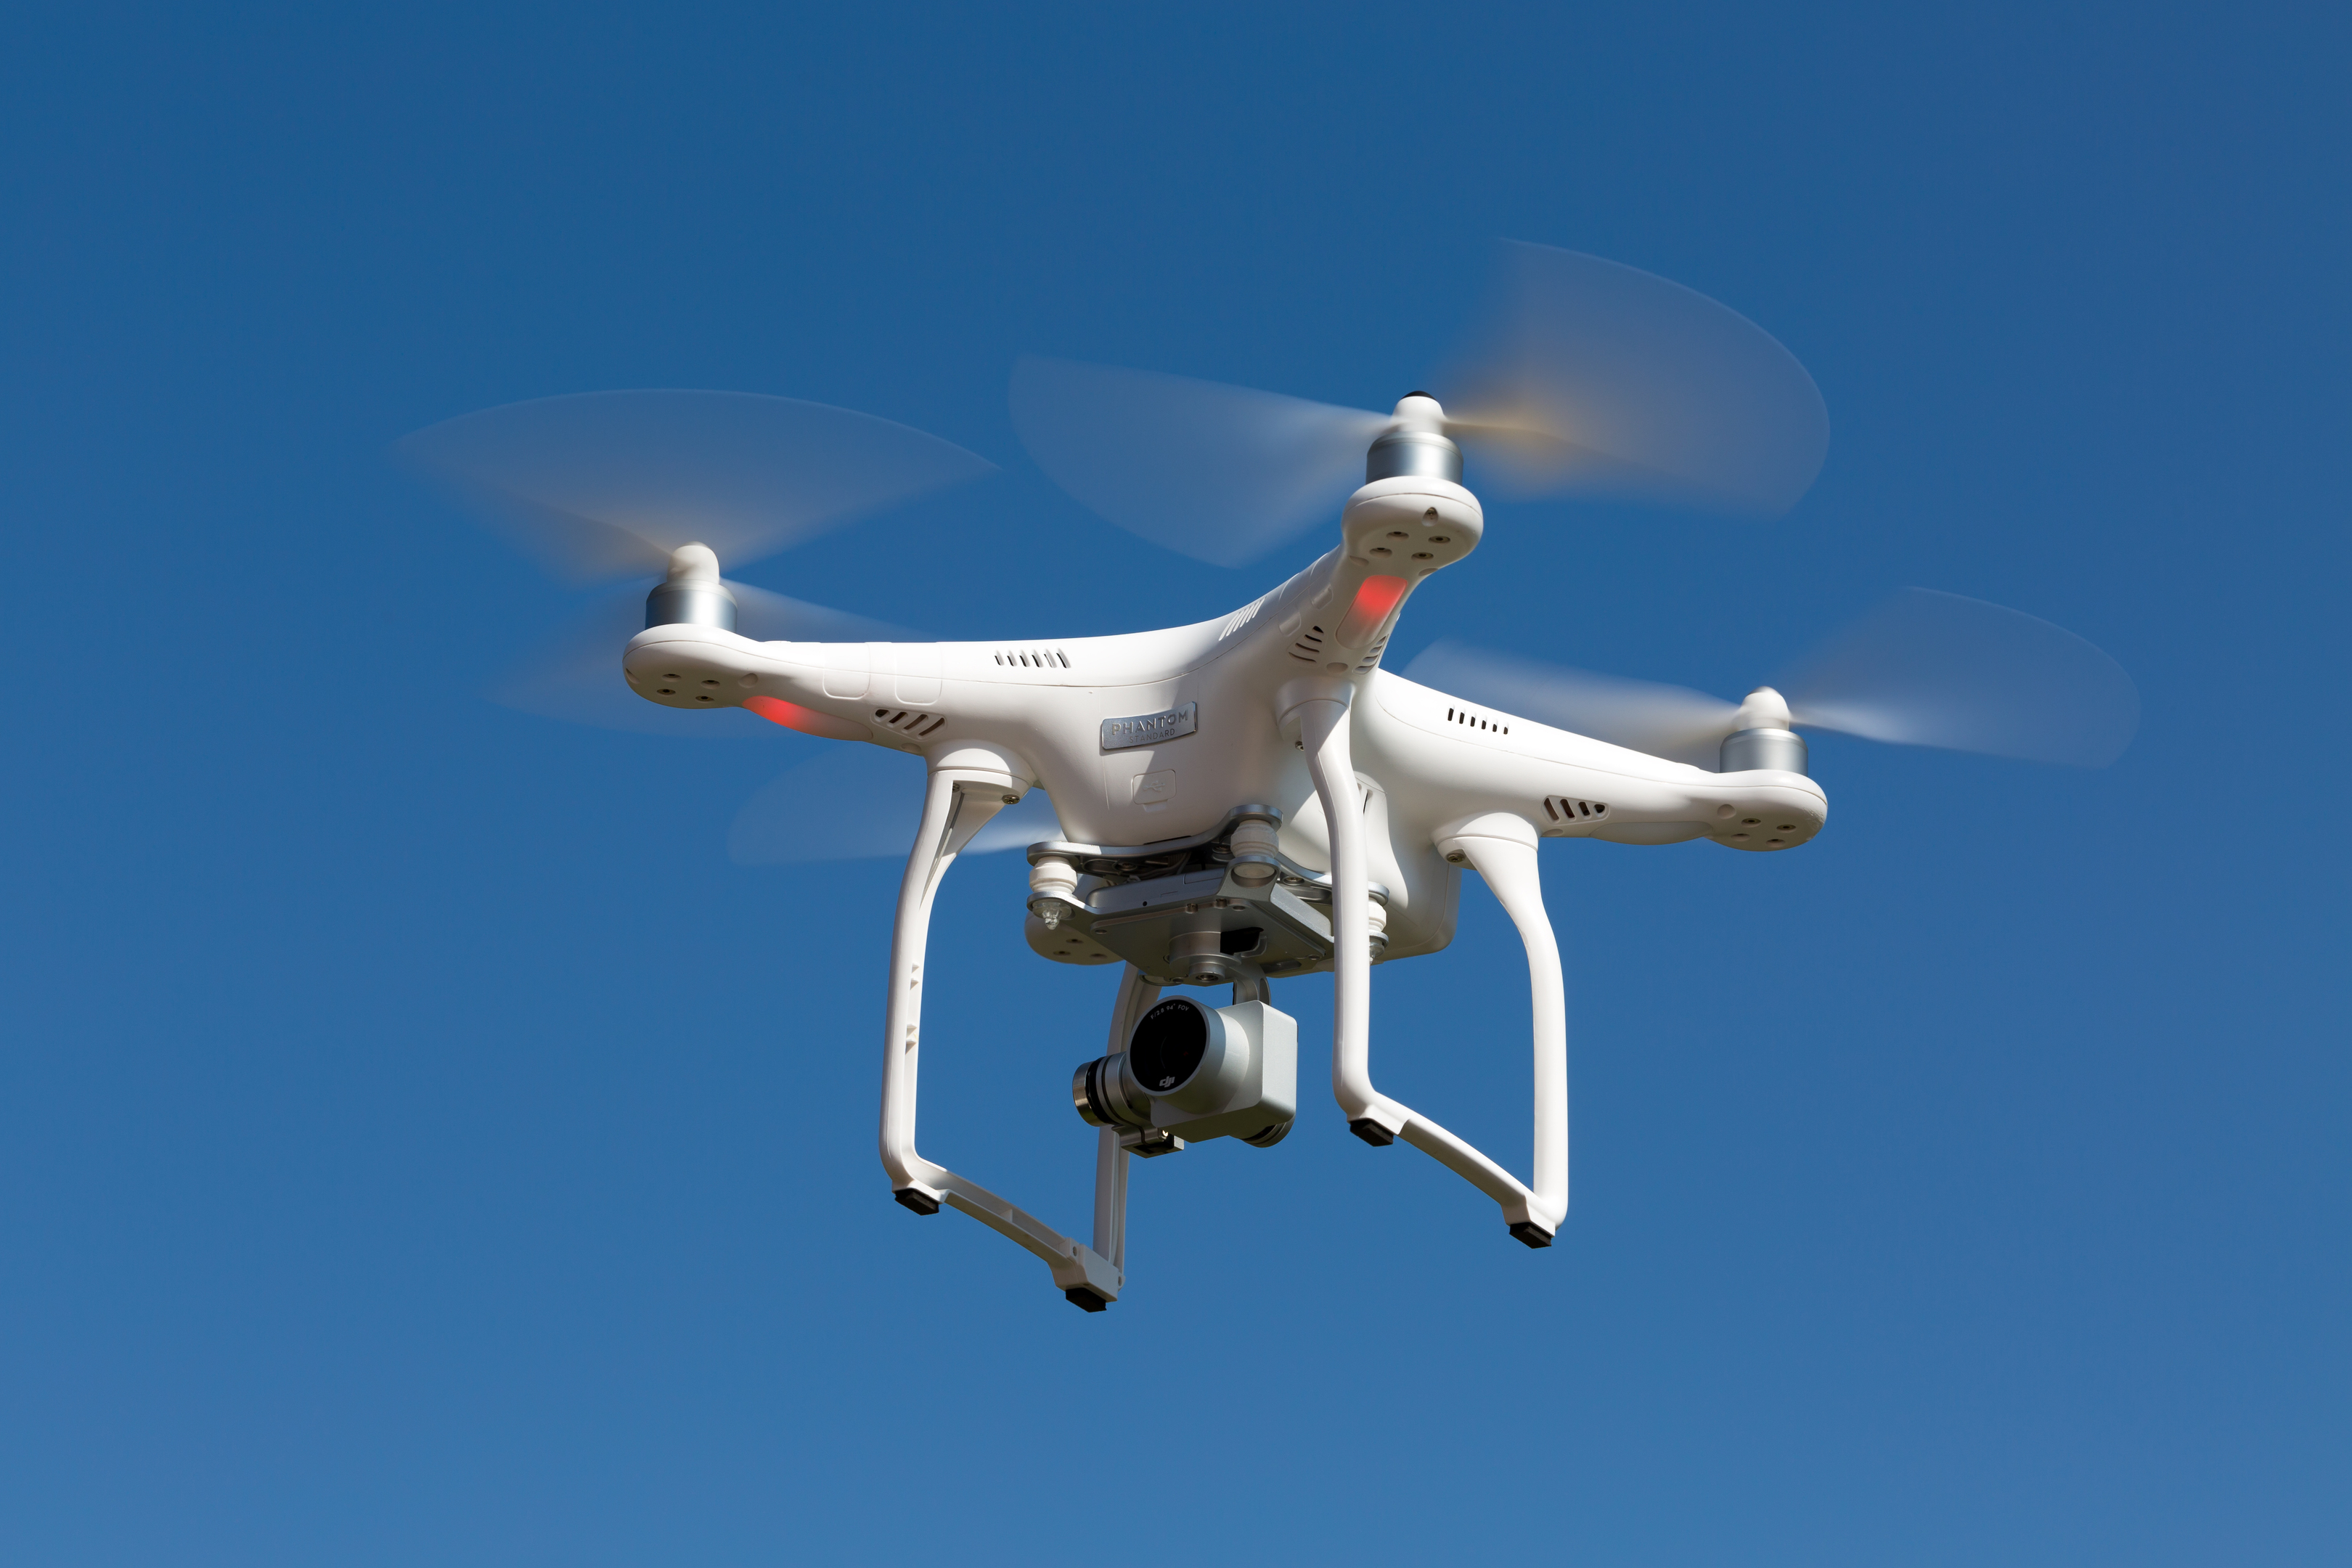 Police have issued a warning about drones